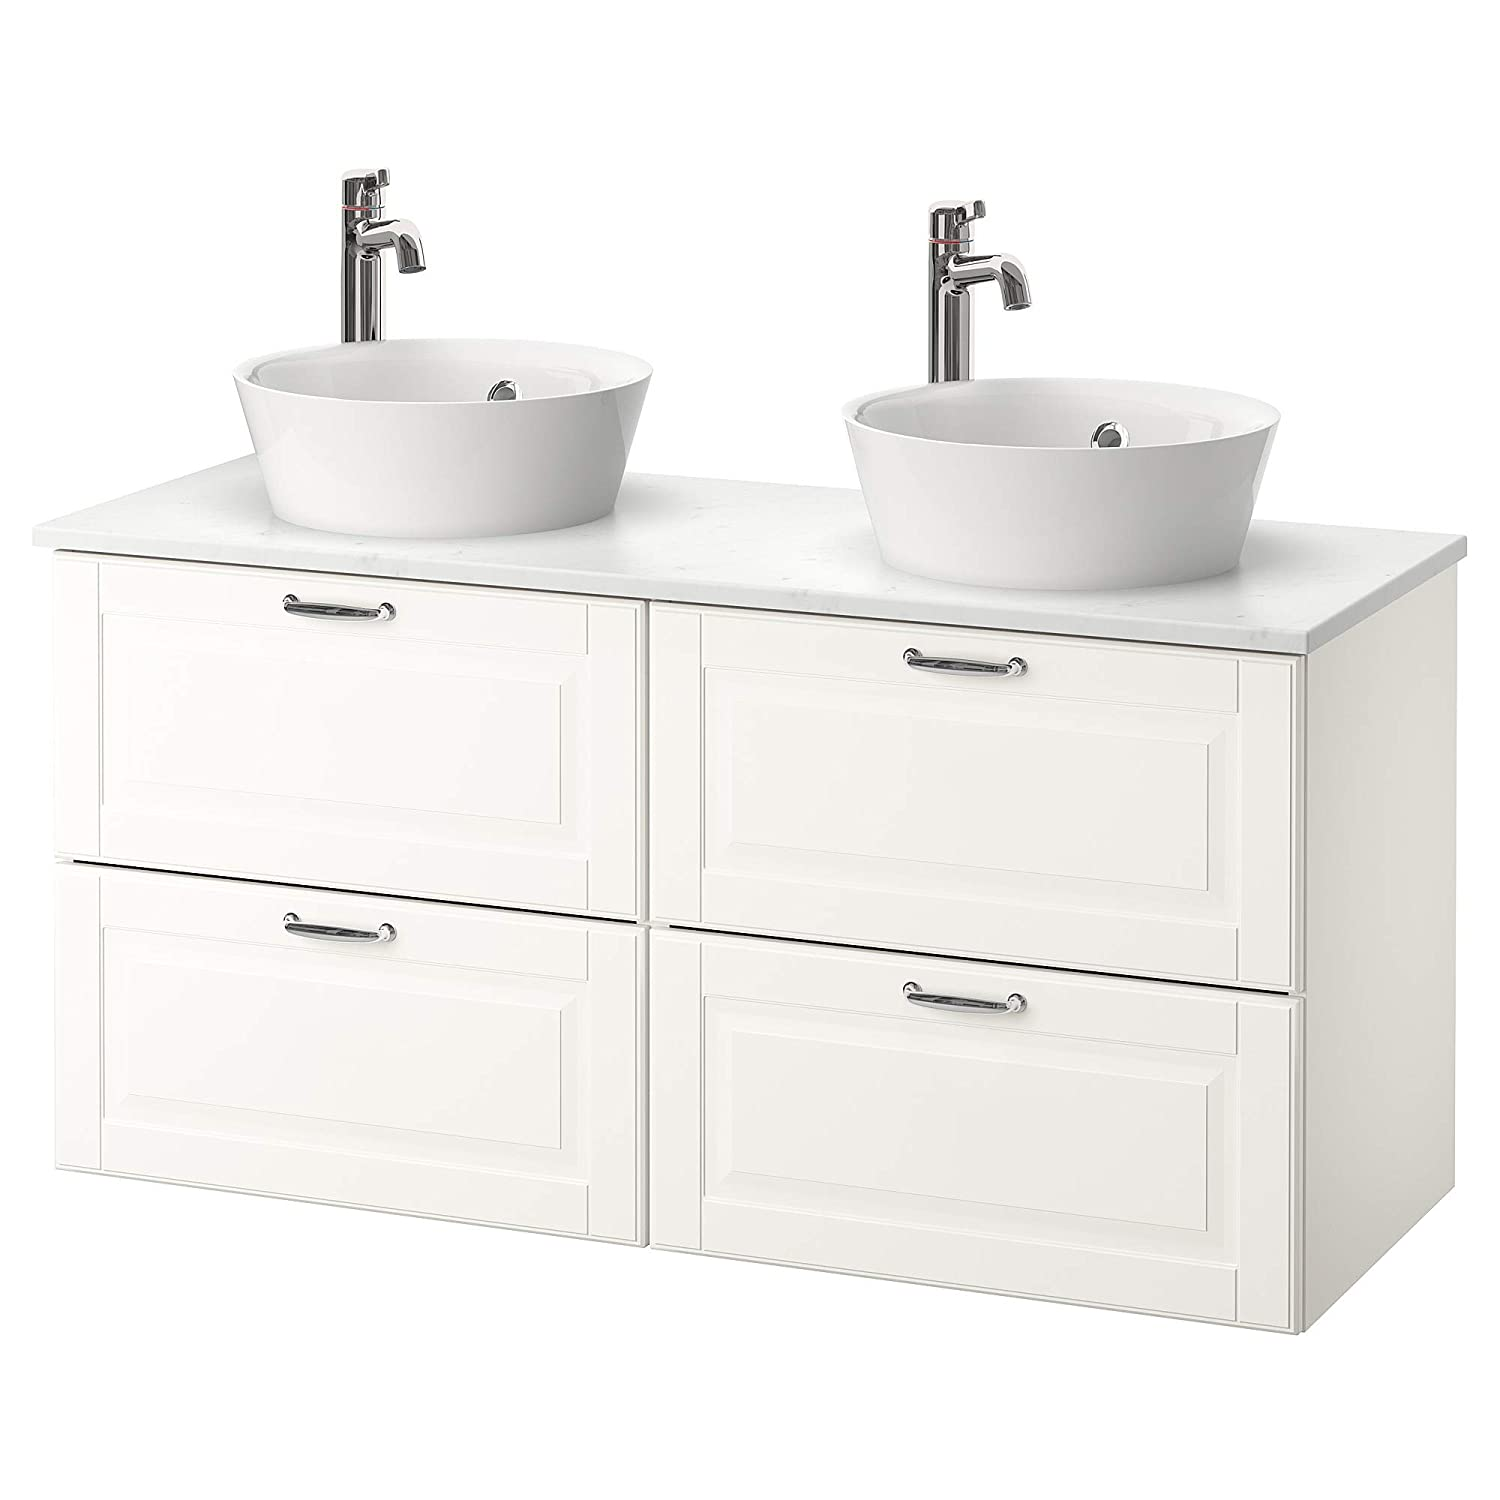 Amazon Com Ikea 192 492 51 Godmorgon Sink Cabinet With Top With